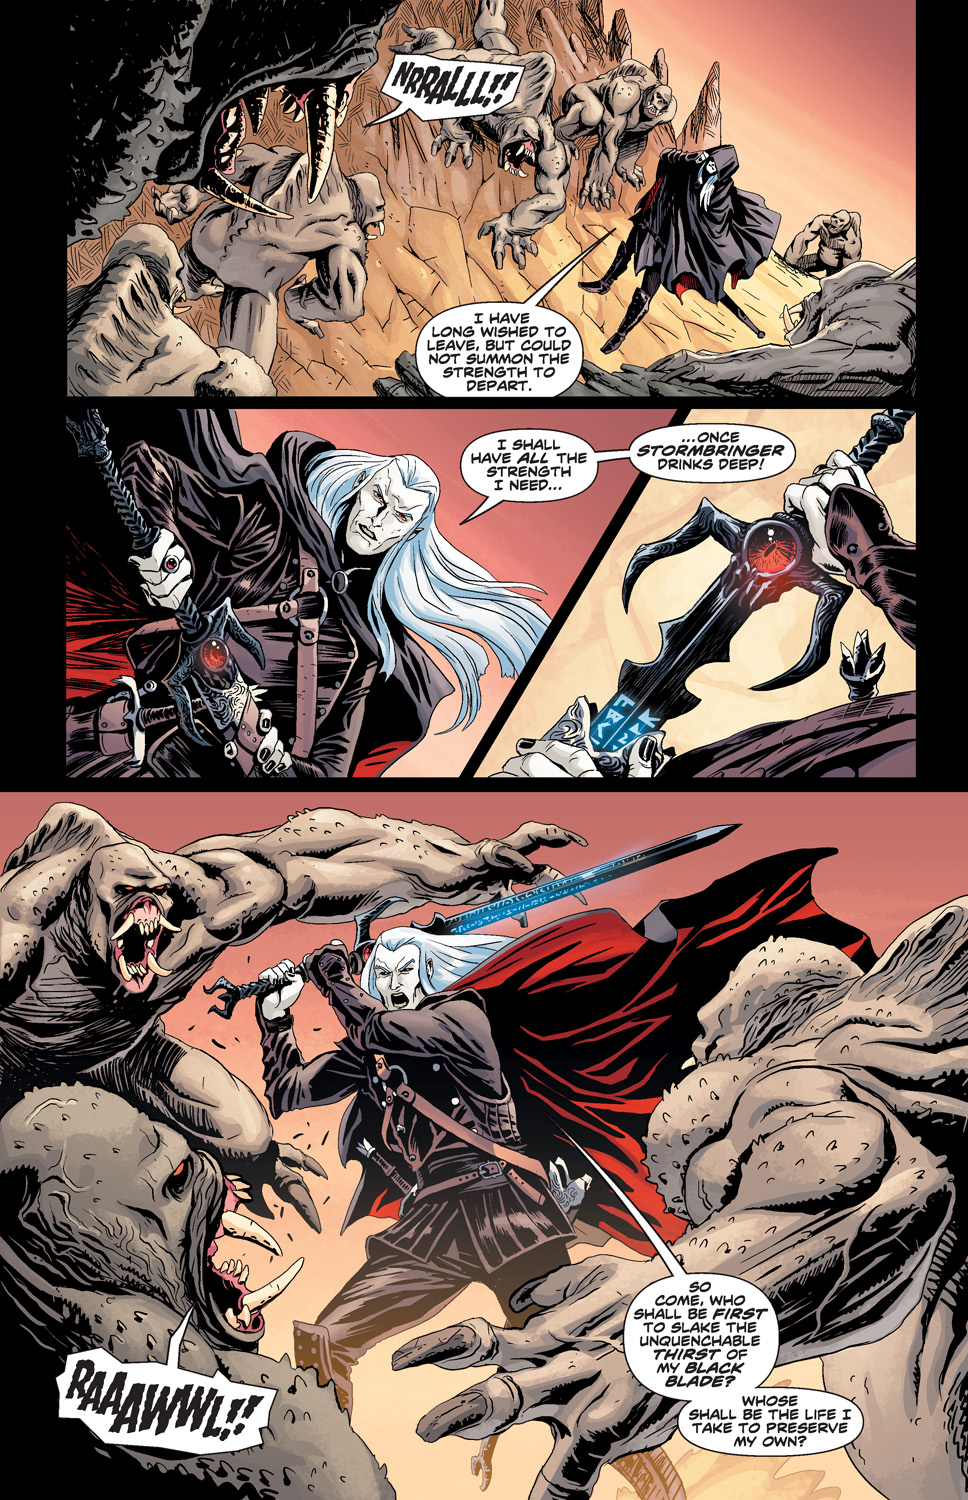 ELRIC_THE_BALANCE_LOST_FCBD_Preview_Page_2 Michael Moorcock's ELRIC: THE BALANCE LOST comes to life this May